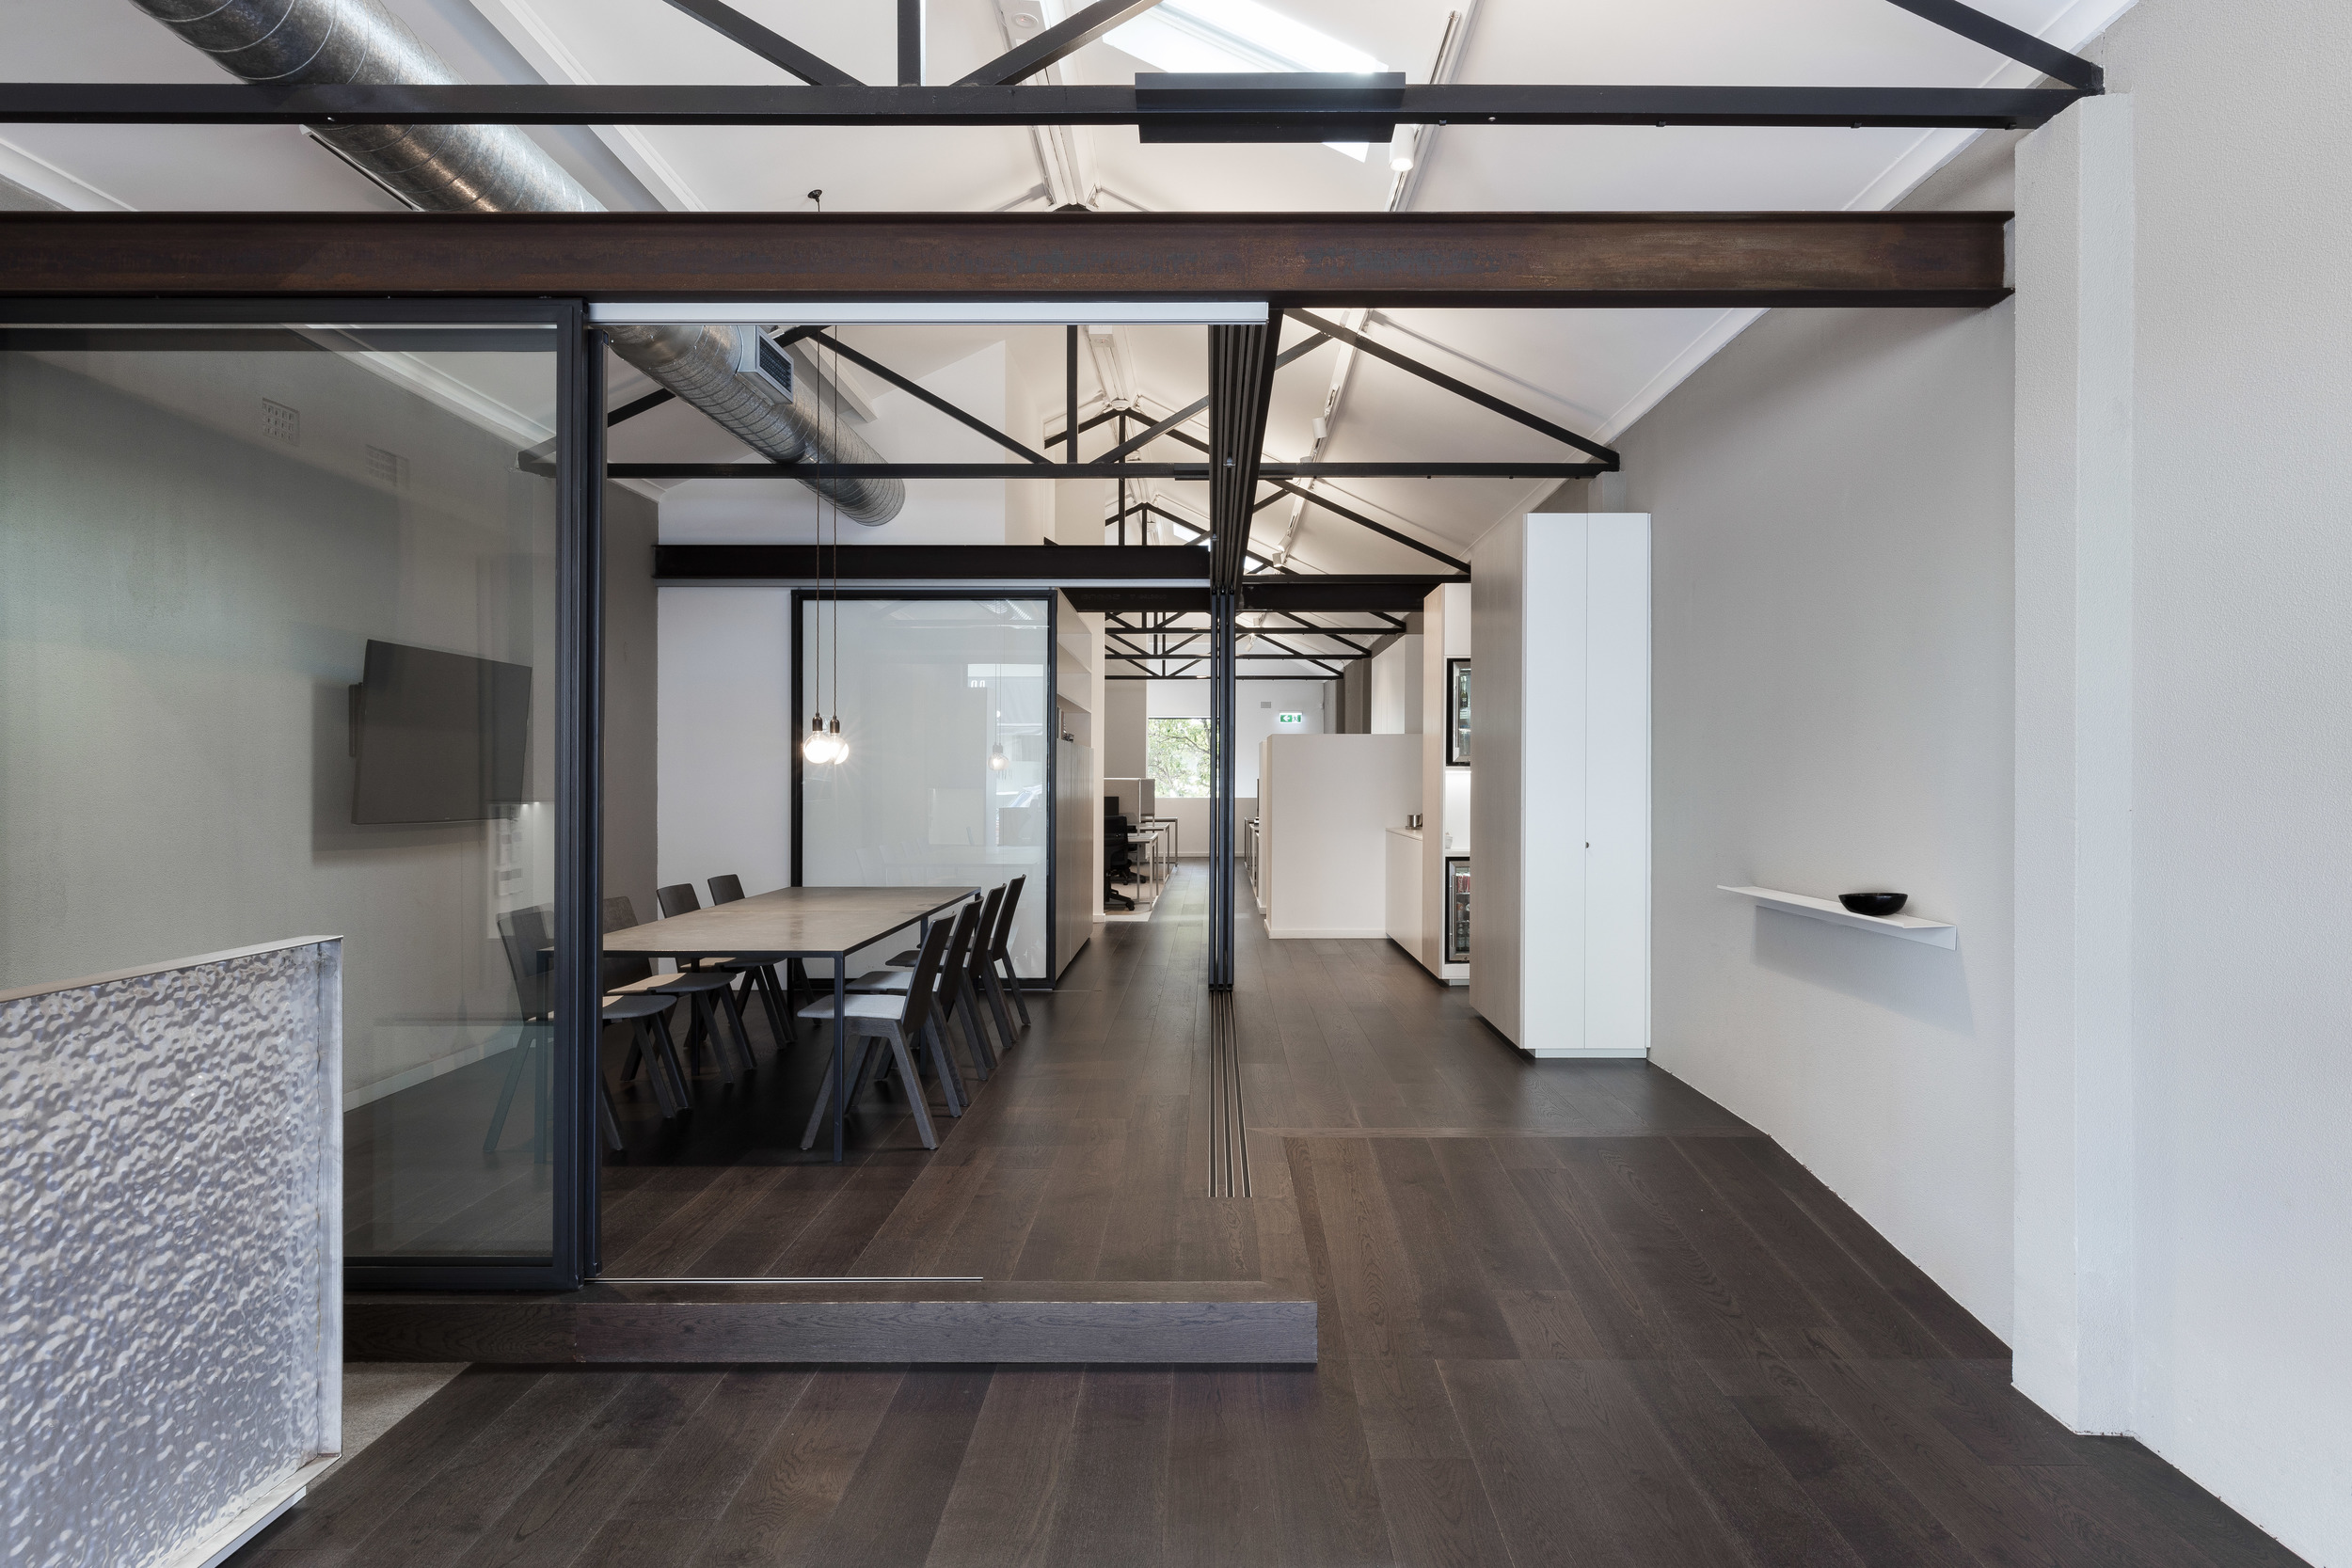 Laing & Simmons Carrs Park by Telly Theodore & Associates